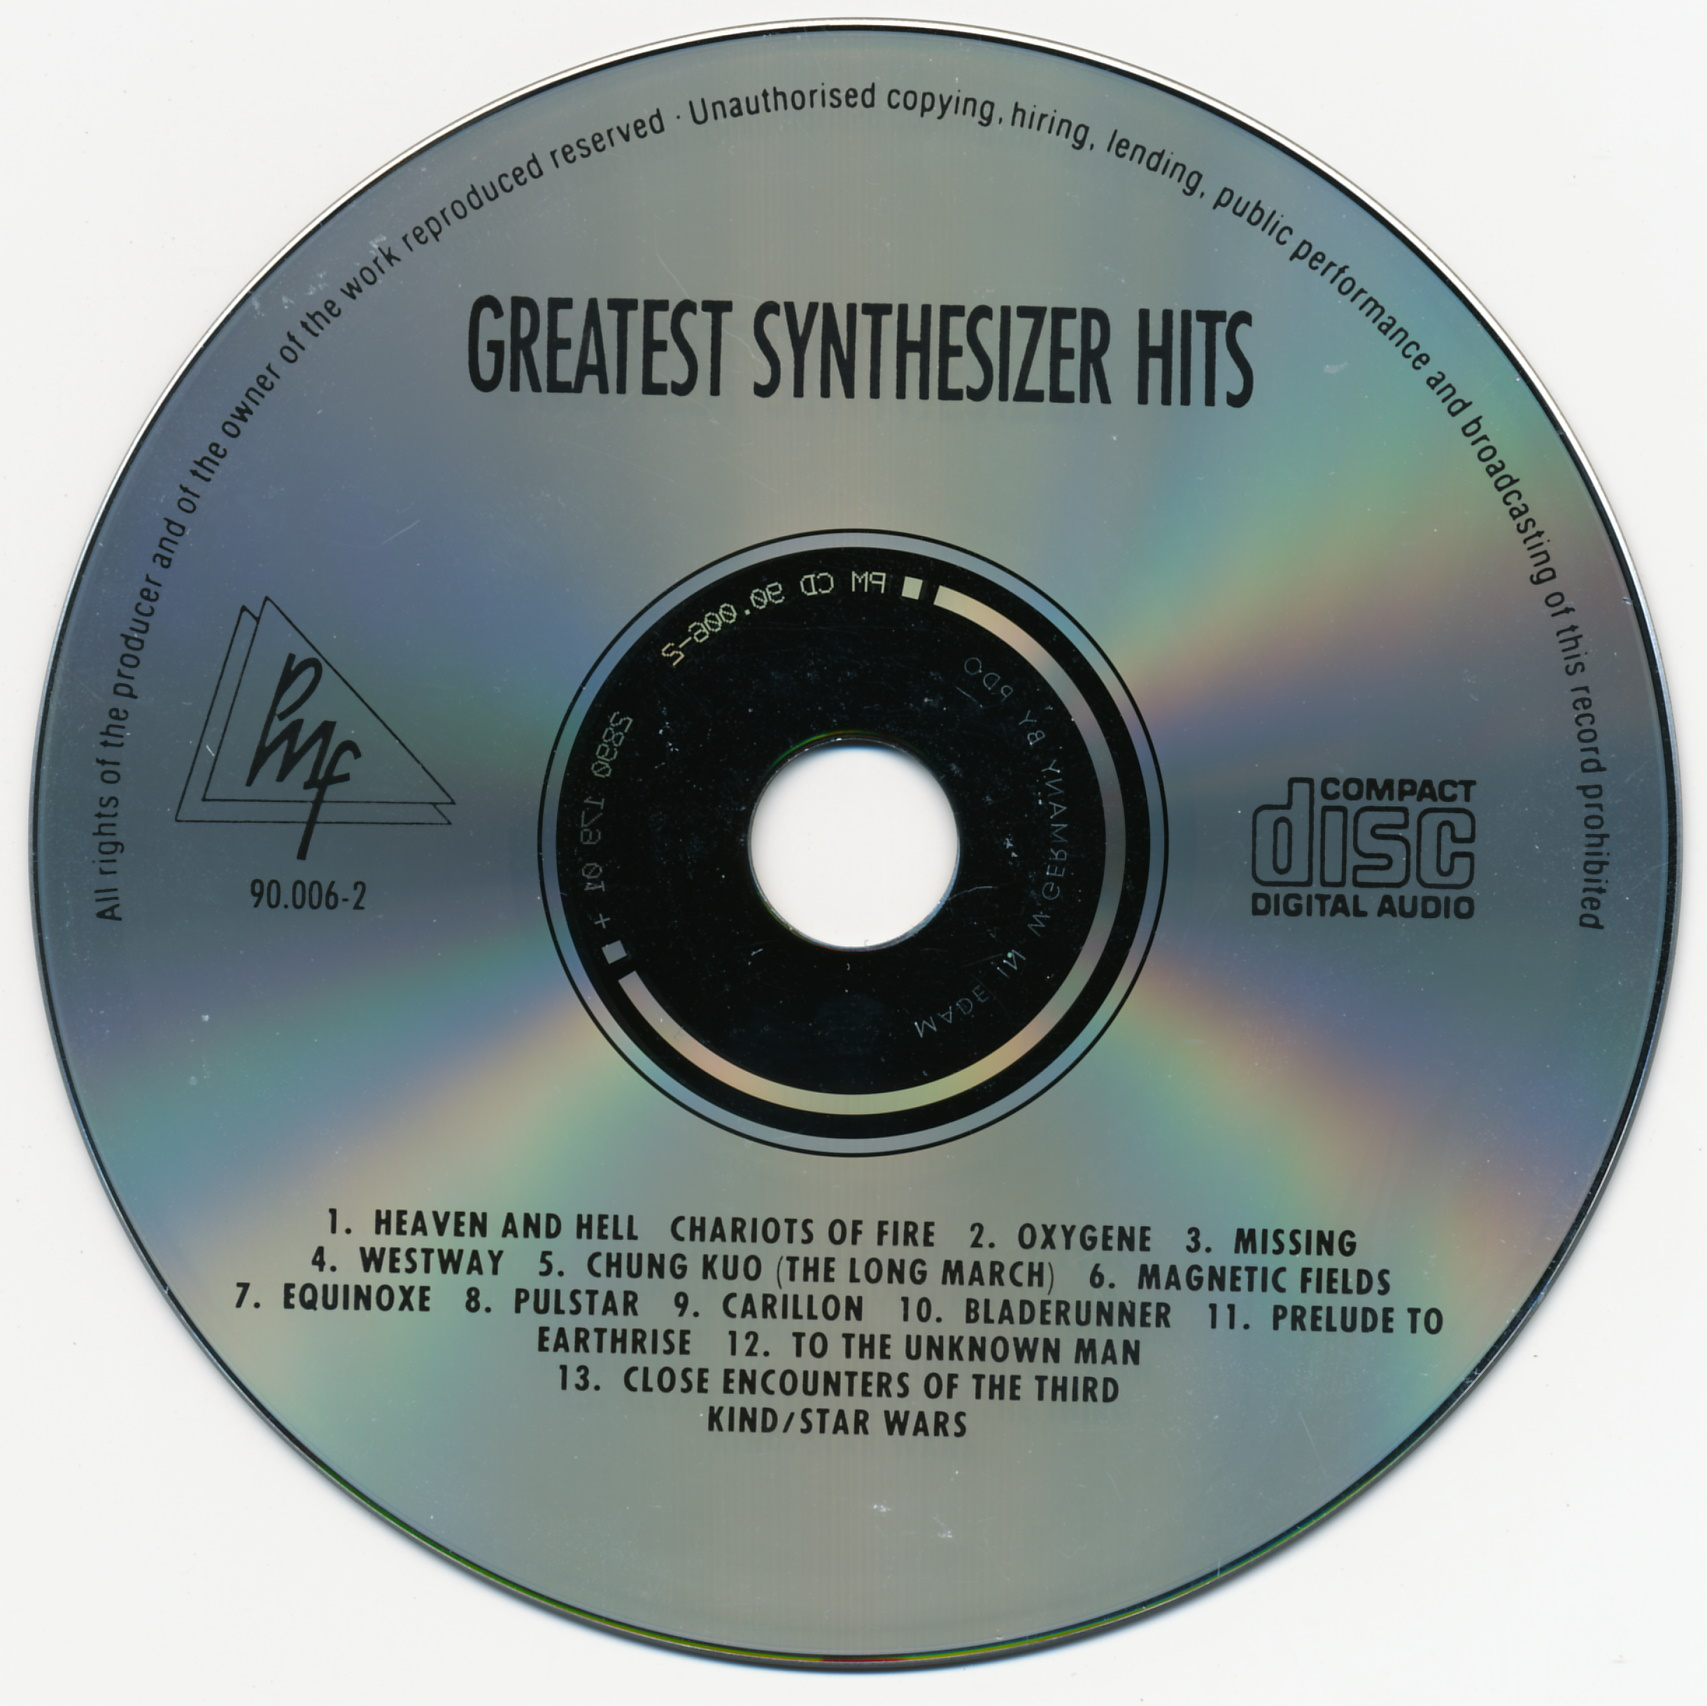 Greatest Synthesizer Hits (1990)